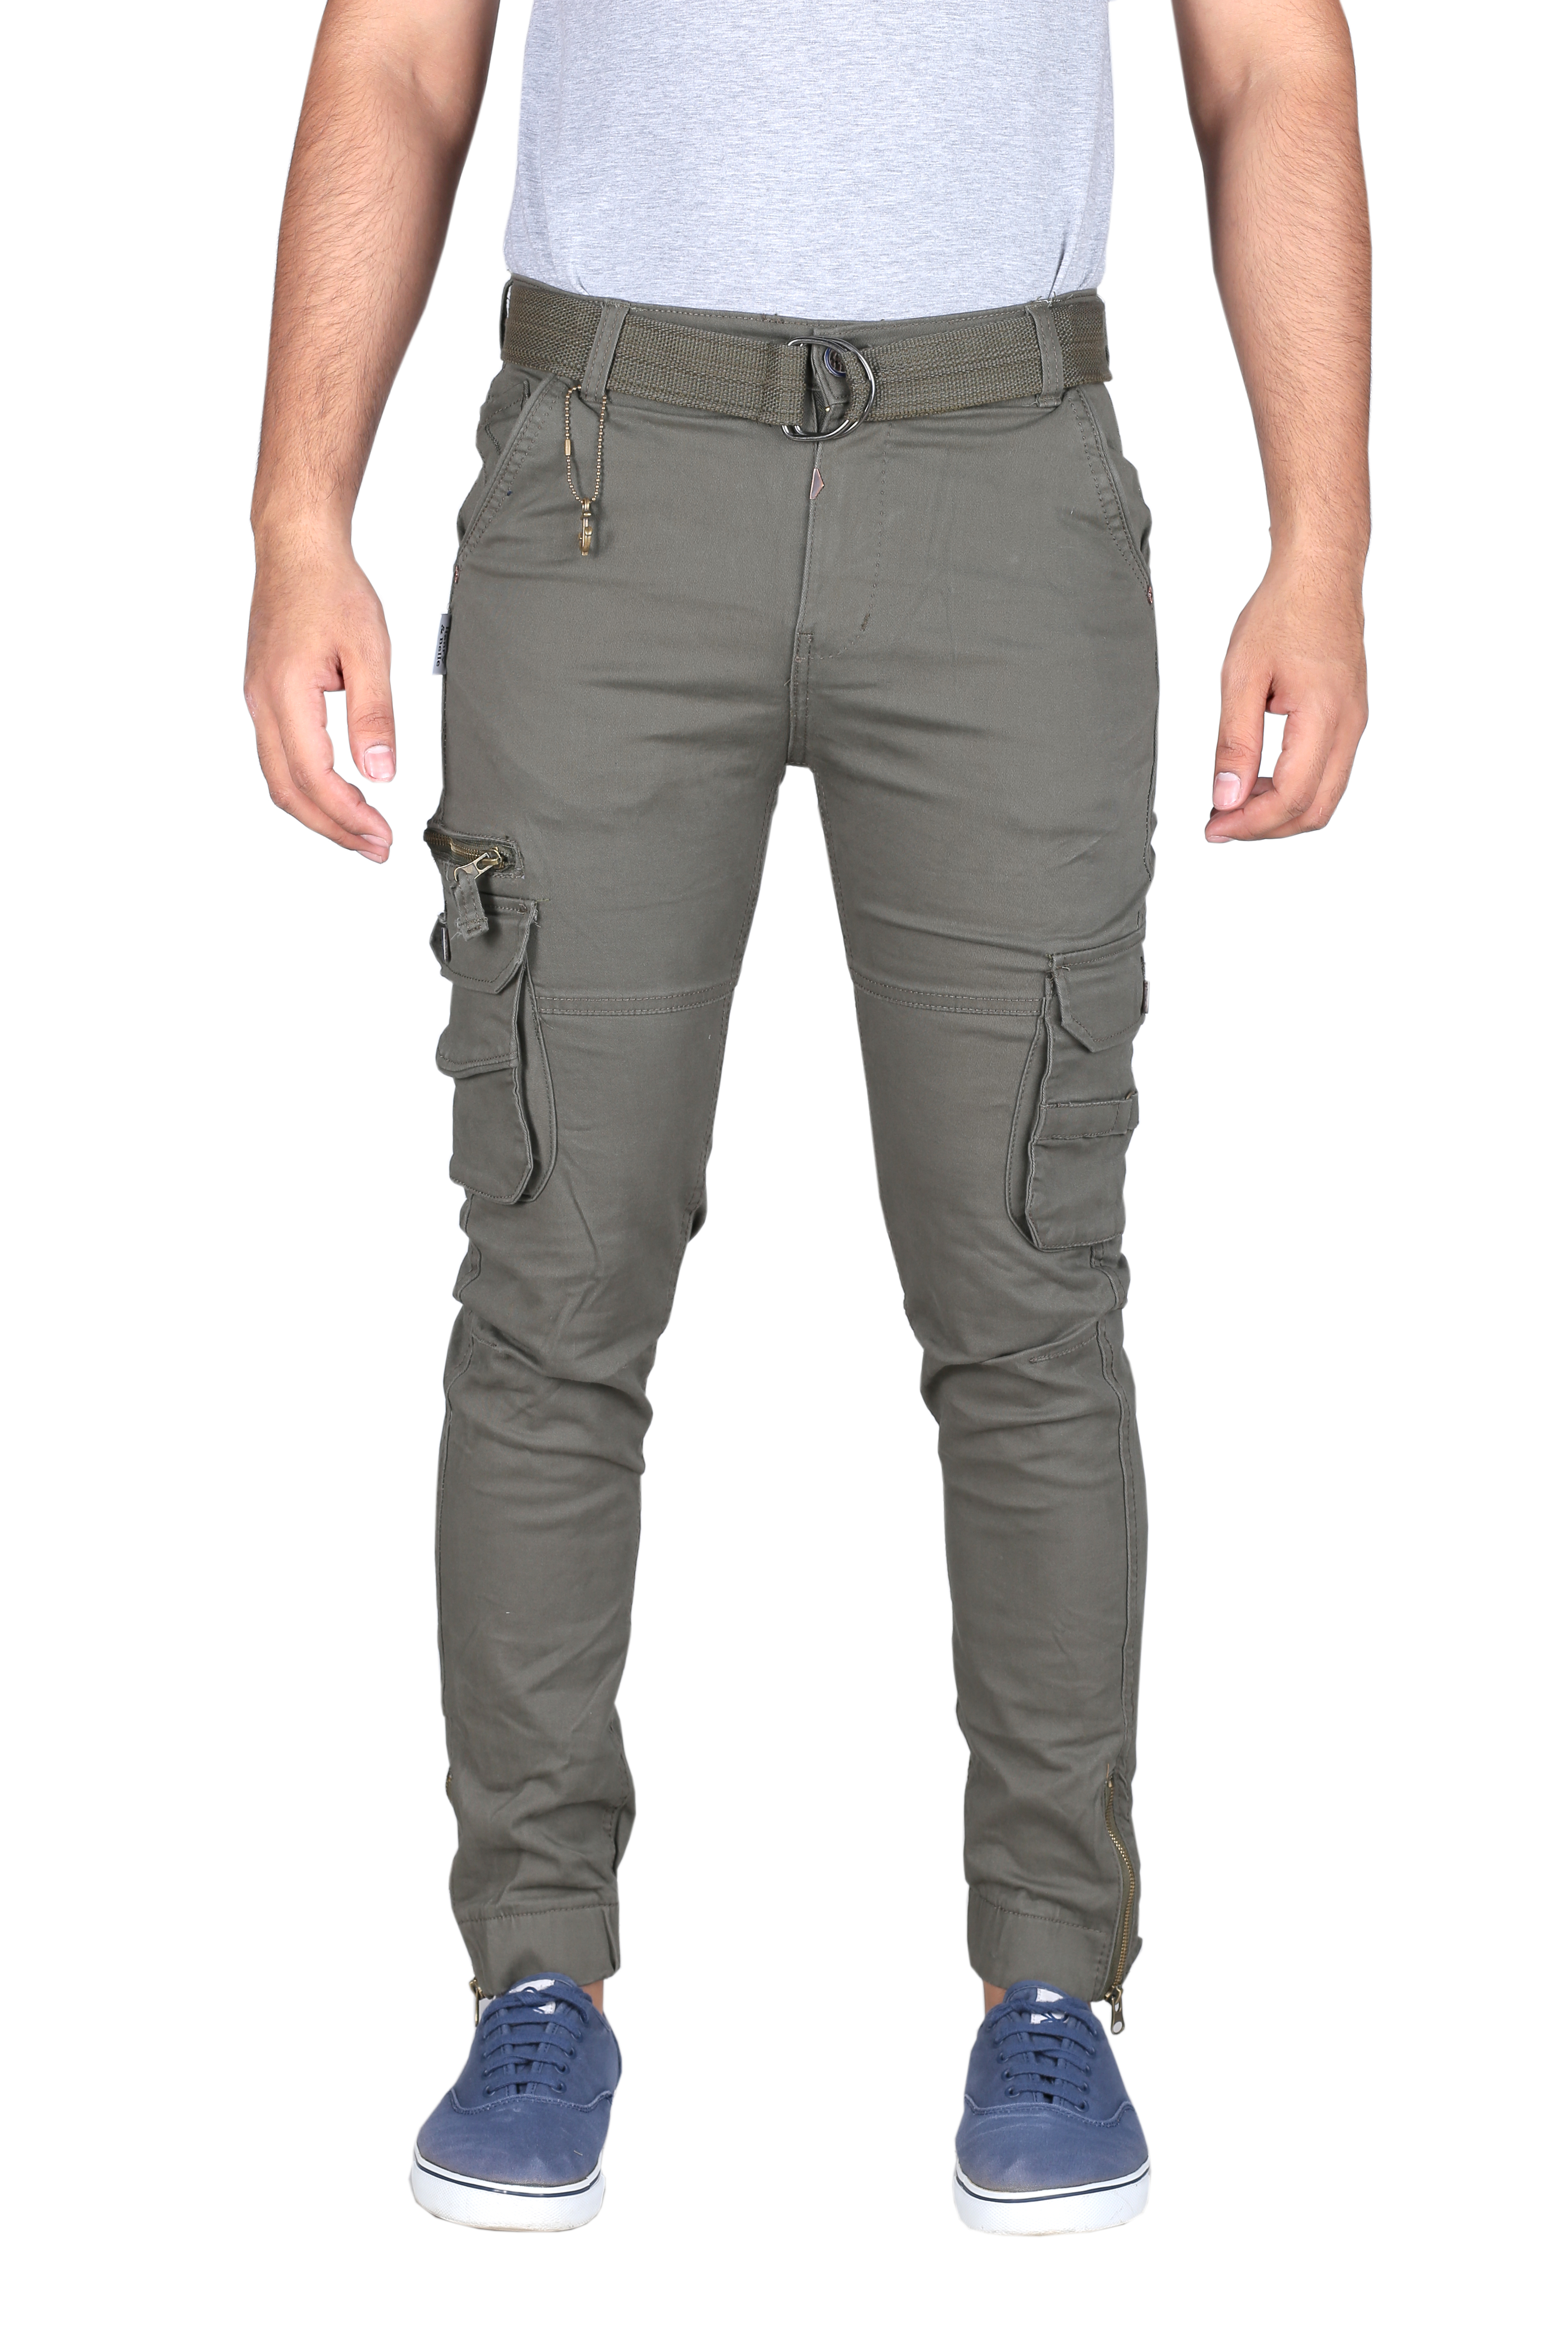 Casual Cargo Trouser for Mens